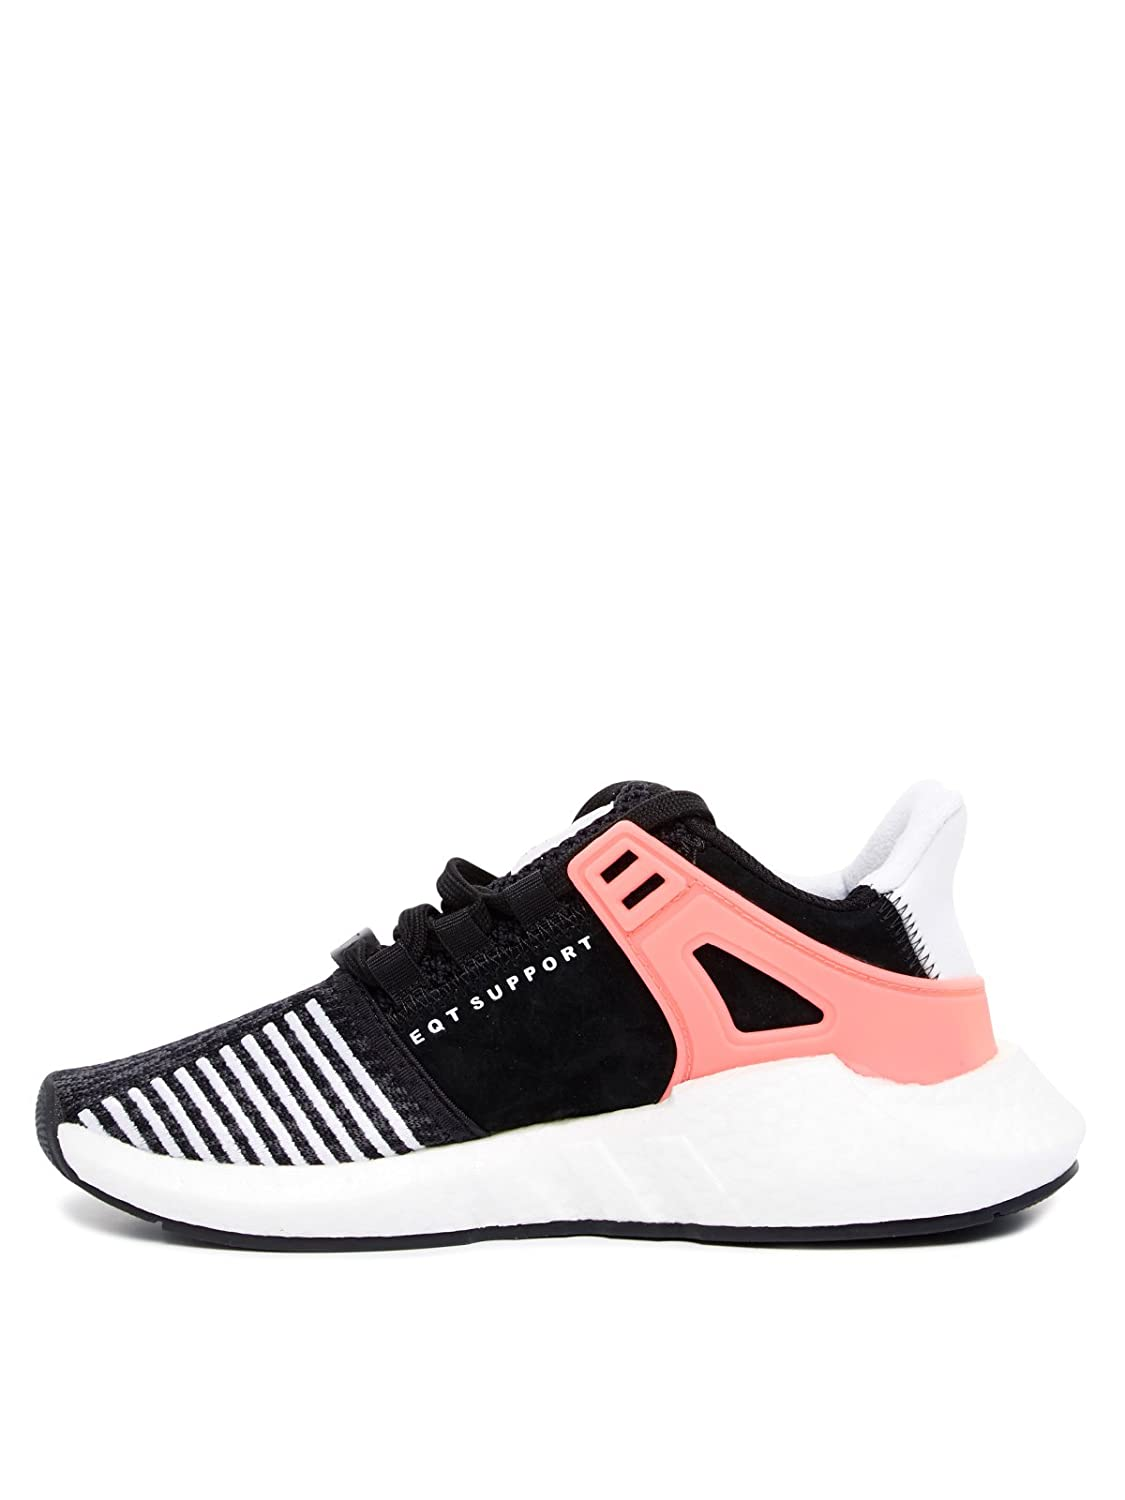 Adidas EQT Support ADV 9317 Boost (TurboWhiteBlack) US 10